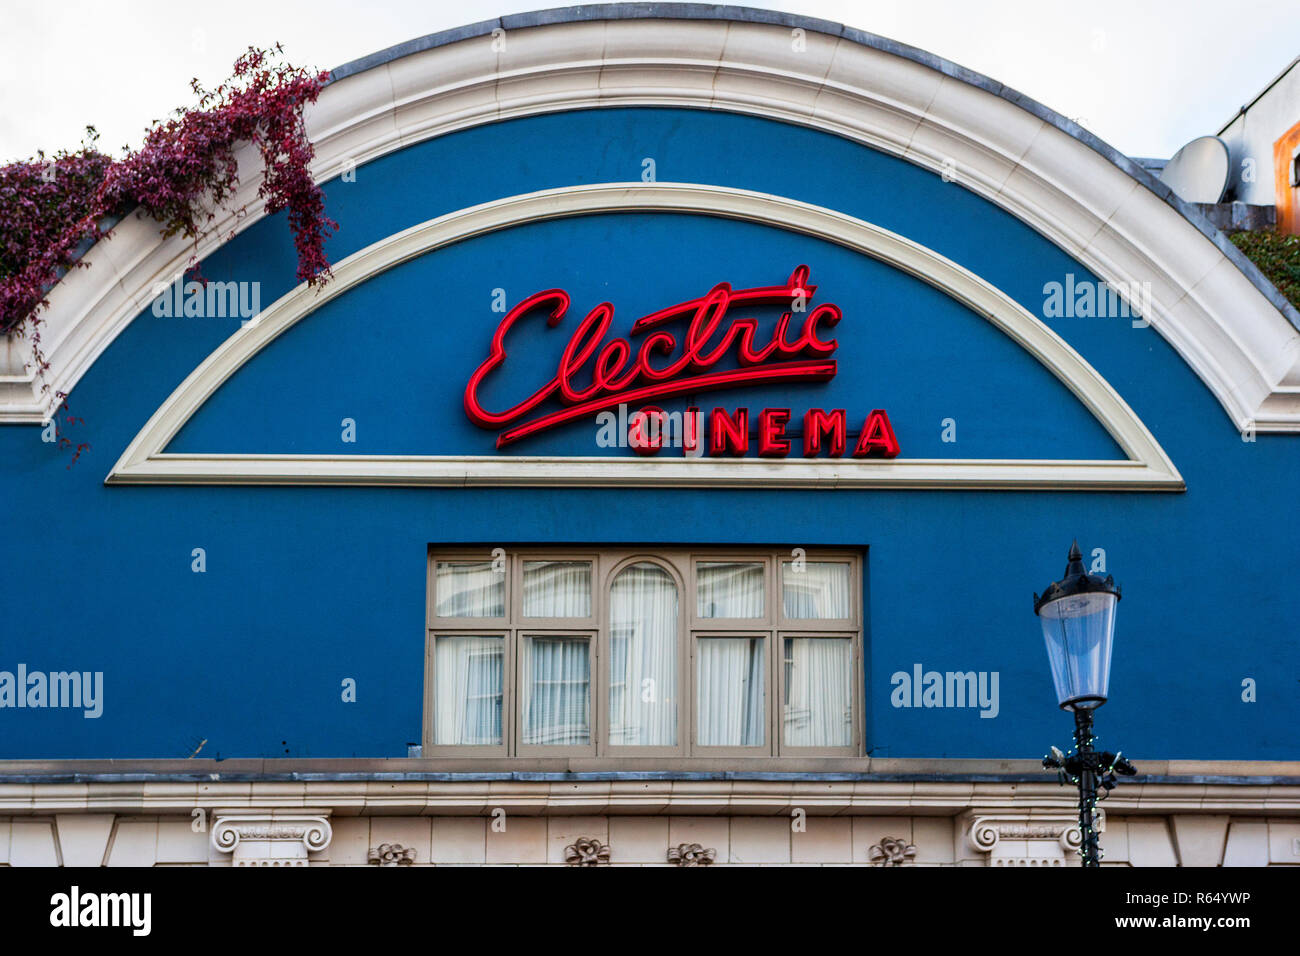 The Electric Cinema, one of the oldest working cinemas in Britain opened in 1910, Portobello Road, Notting Hill, London - Stock Image